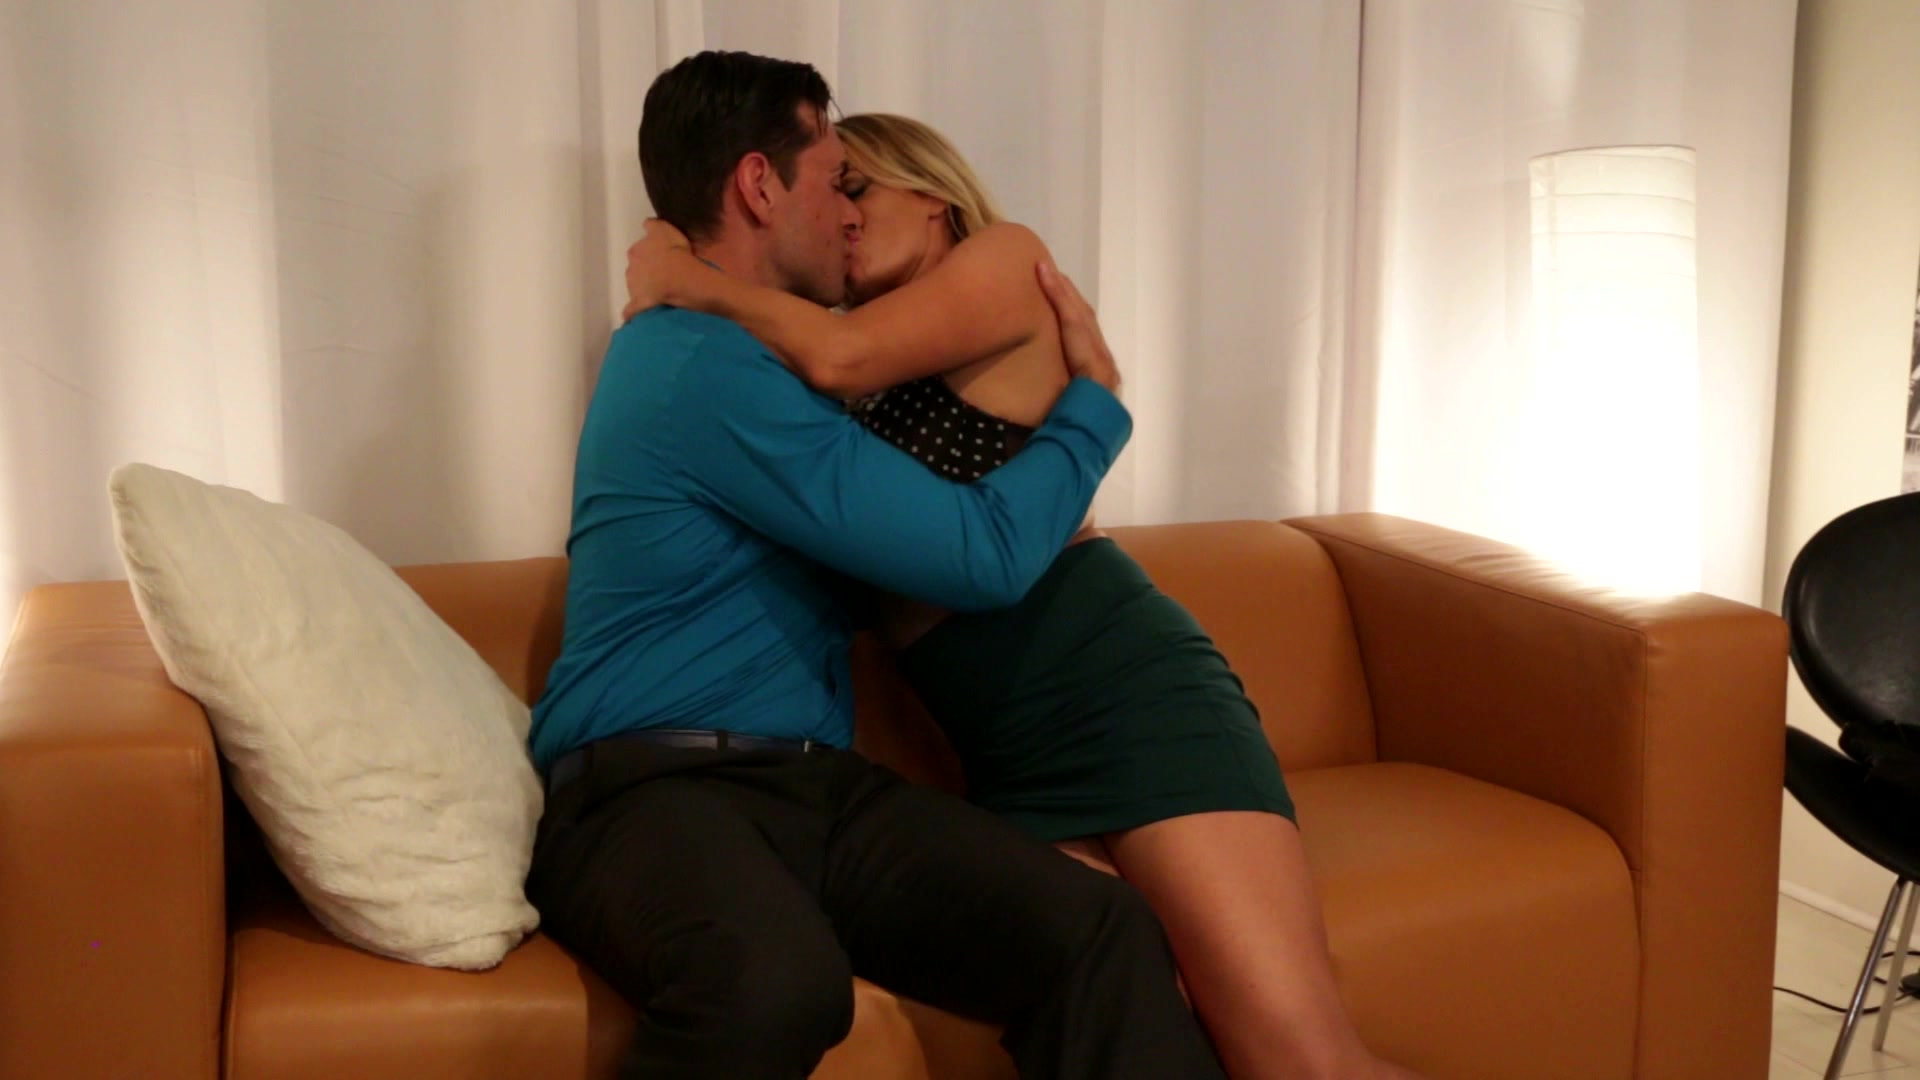 Scene with Stormy Daniels - image 11 out of 20